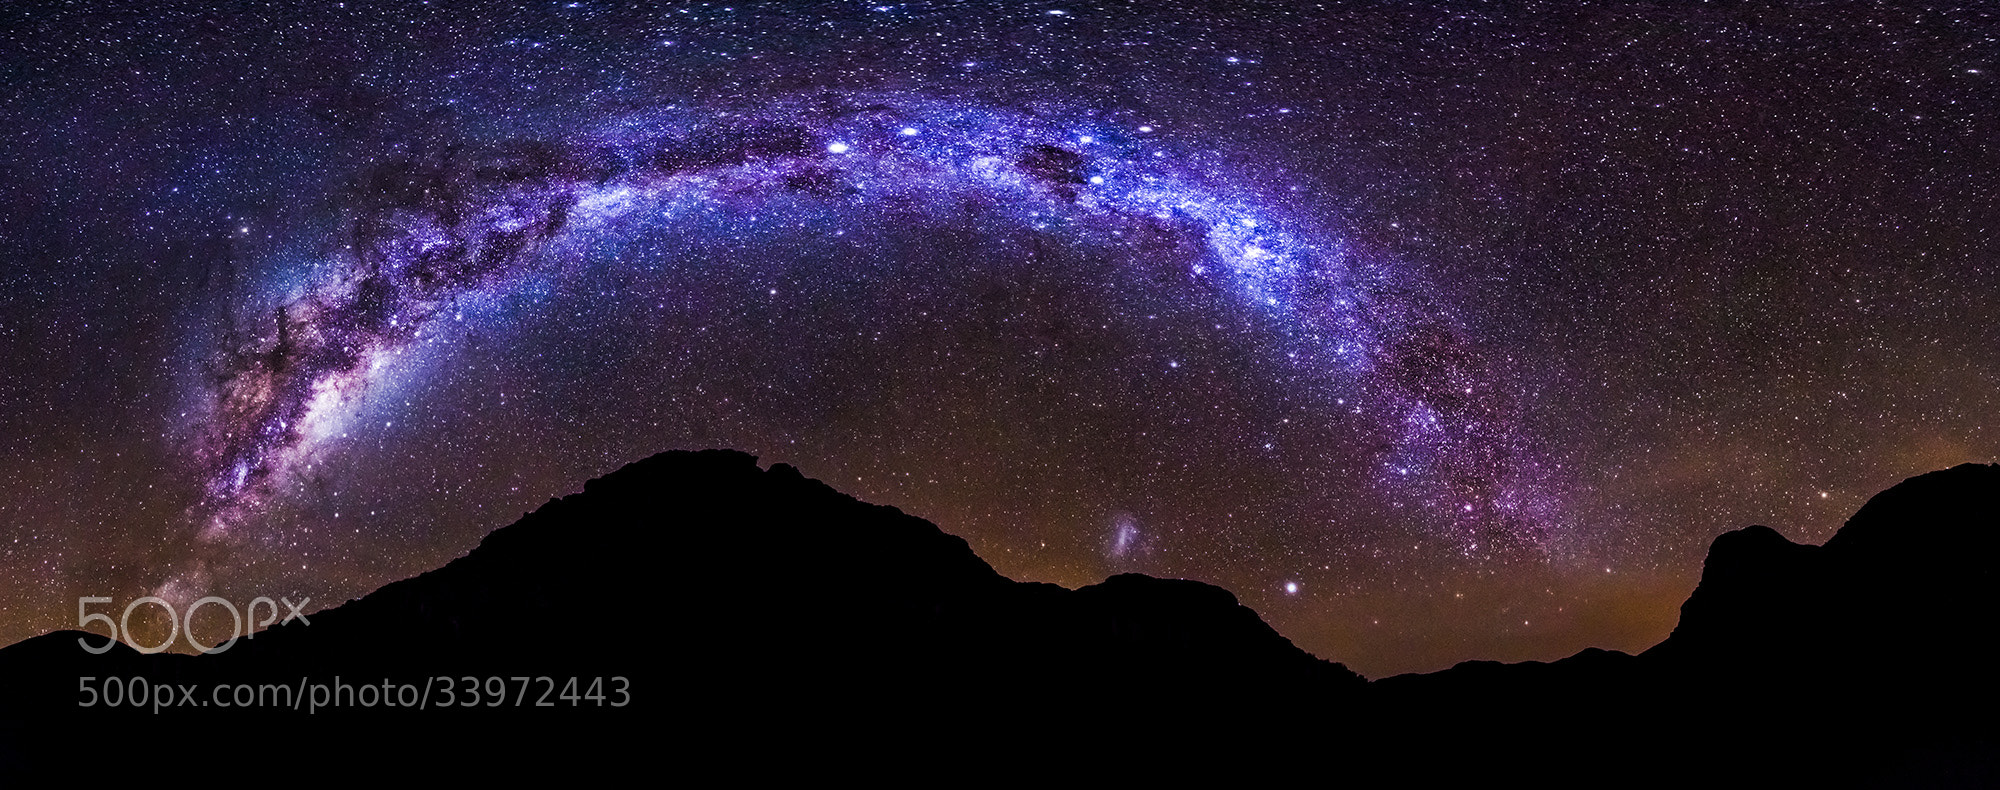 Photograph Milky Way Rising by Jeremias Thomas on 500px